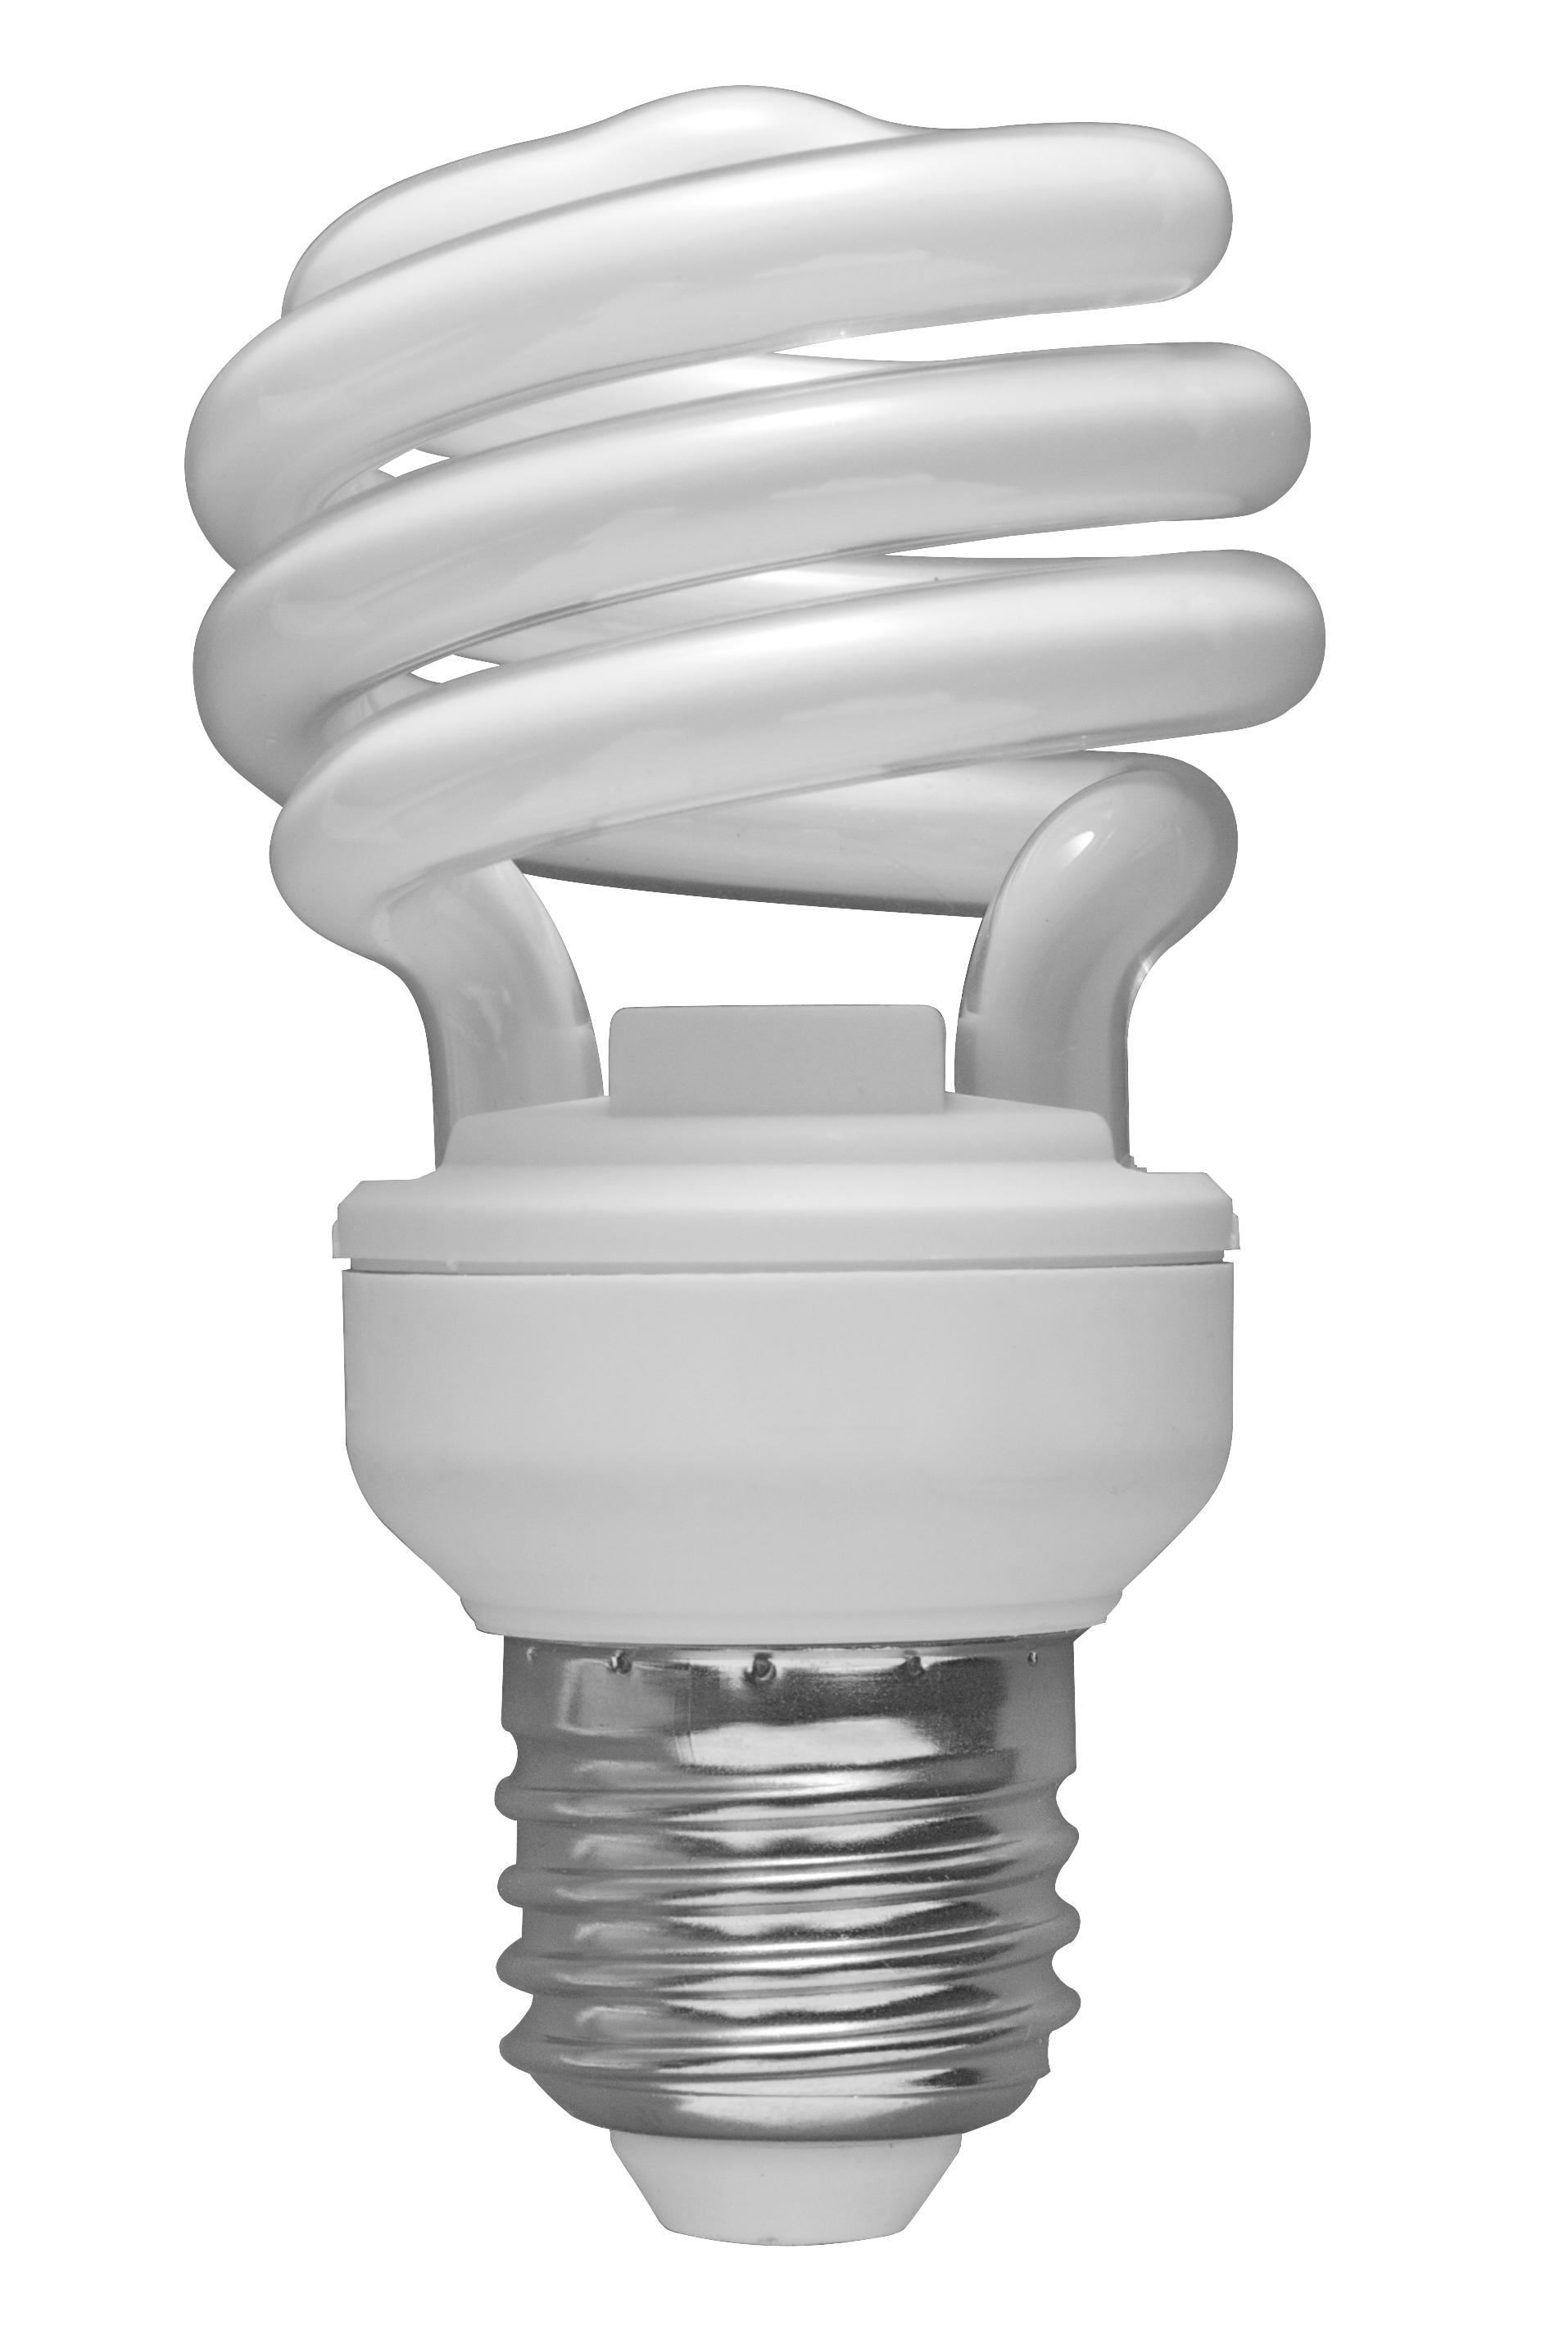 Holiday gifts that save energy money uga greenway news Led light bulbs cost